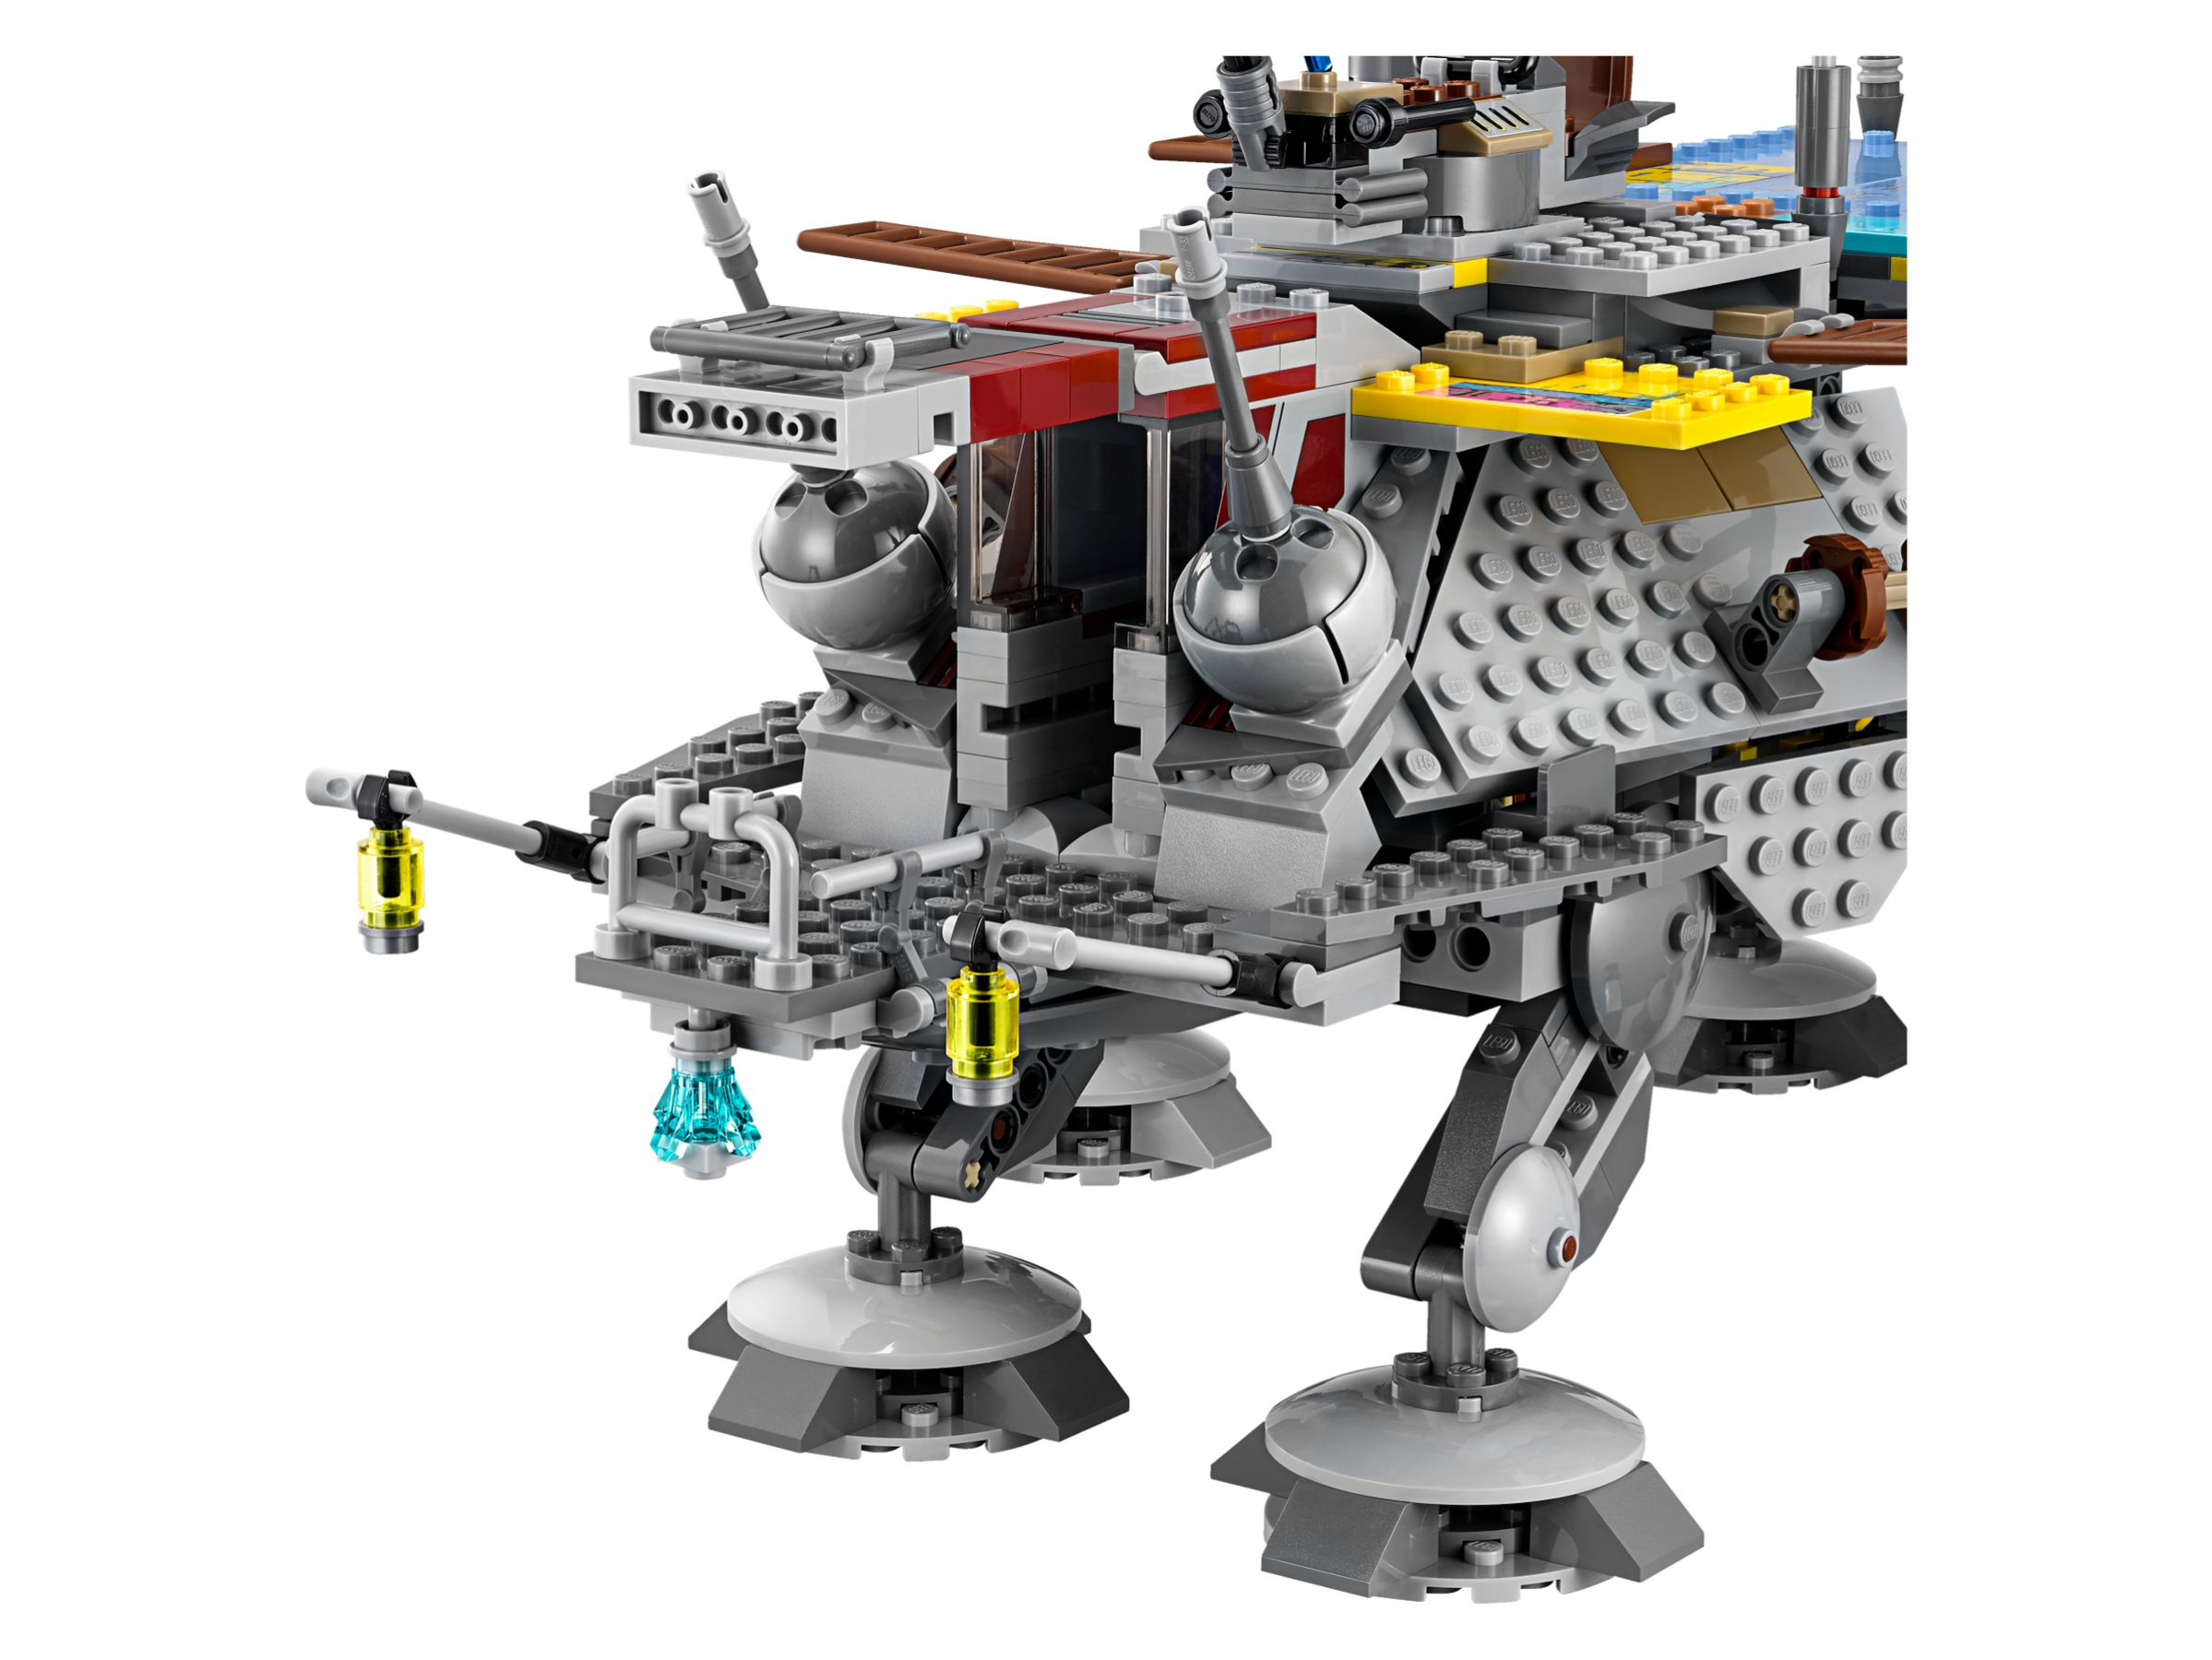 LEGO Star Wars 75157 Captain Rex's AT-TE™ LEGO_75157_alt5.jpg